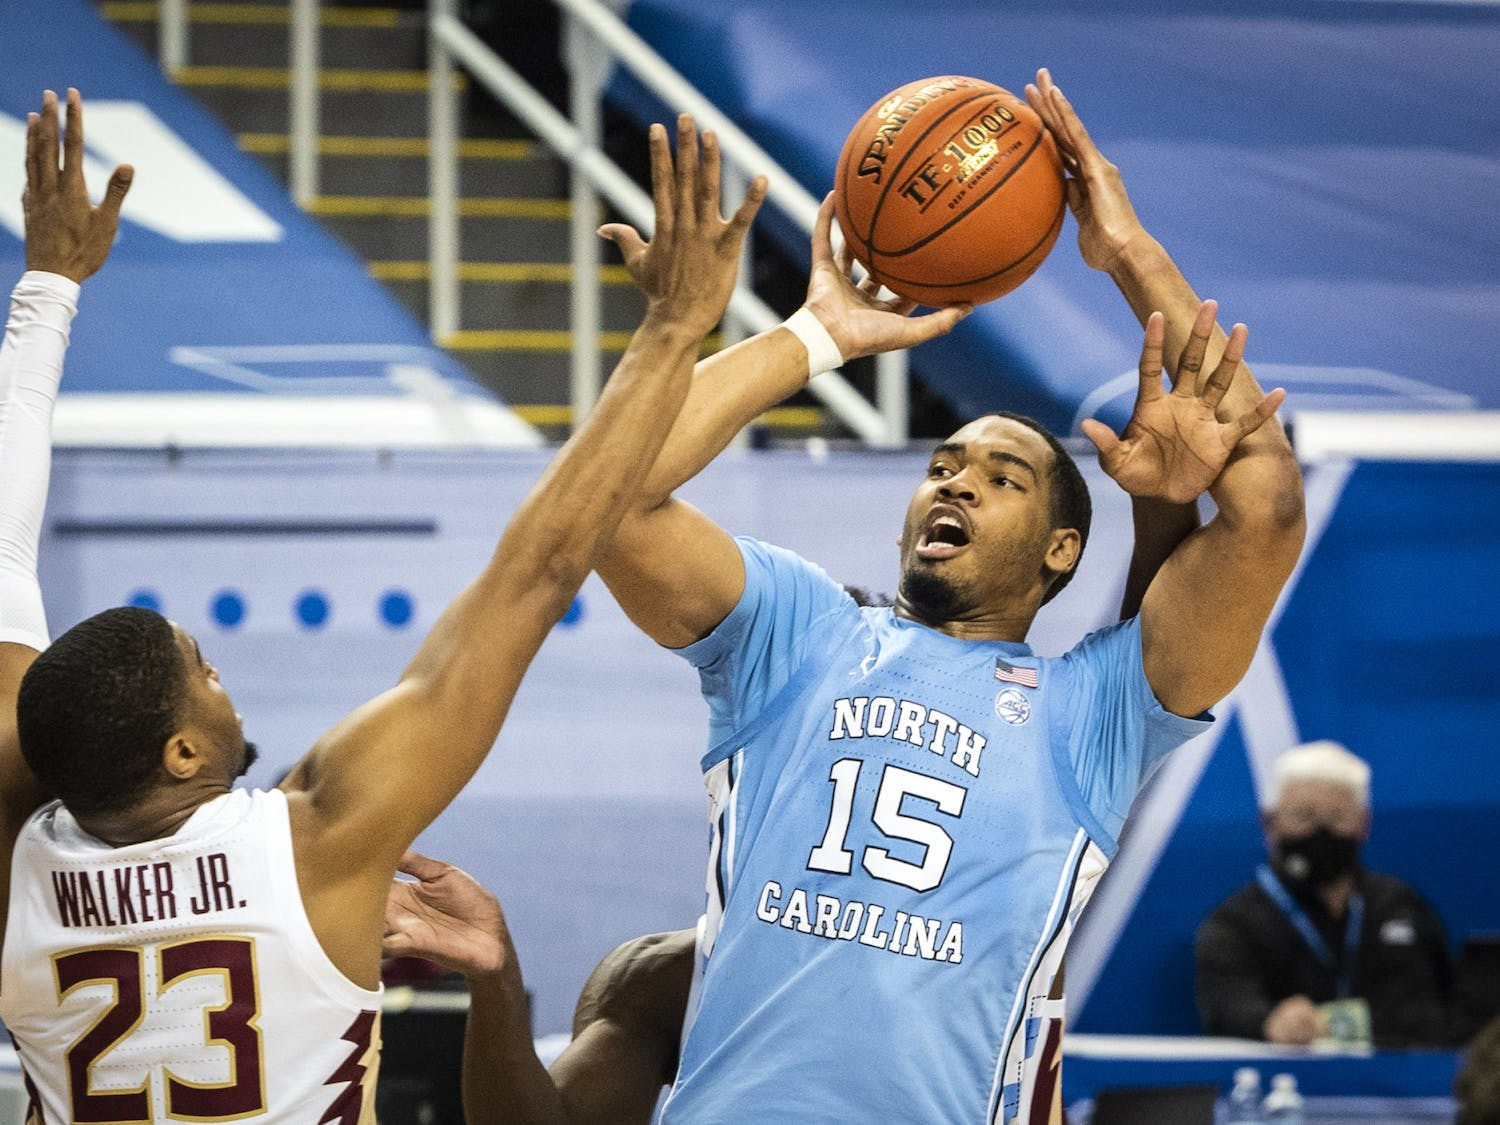 Carolina's Garrison Brooks (15) is fouled as he shoots by Florida State's Quincy Ballard (15) on Friday, March 12, 2021 in Greensboro, N.C. Photo courtesy of Andrew Dye/Winston-Salem Journal